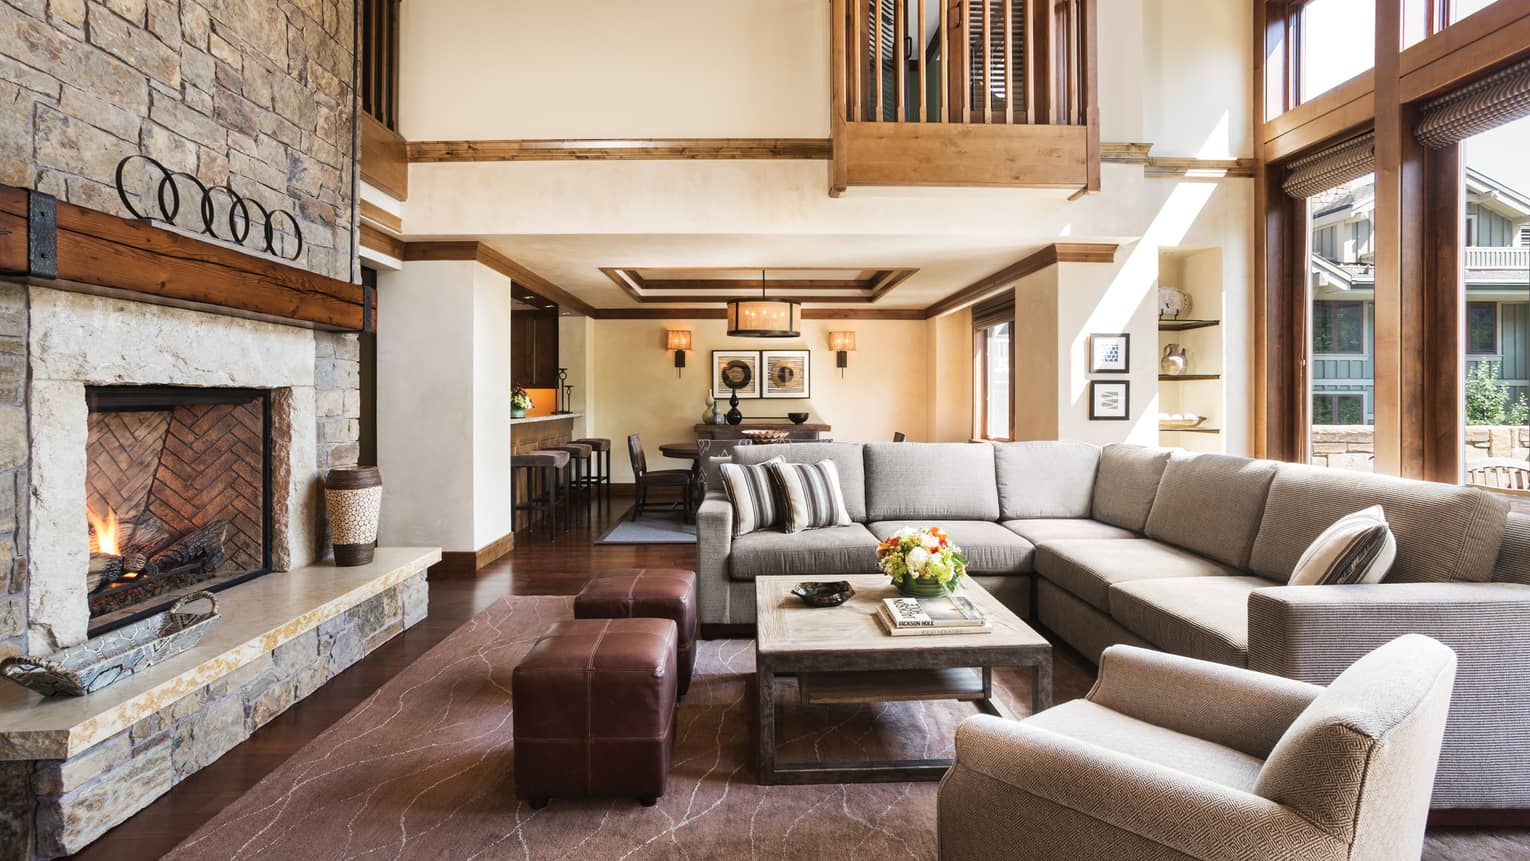 Large L-shaped sofa, ottomans by fireplace under large loft ceilings, wood balconies